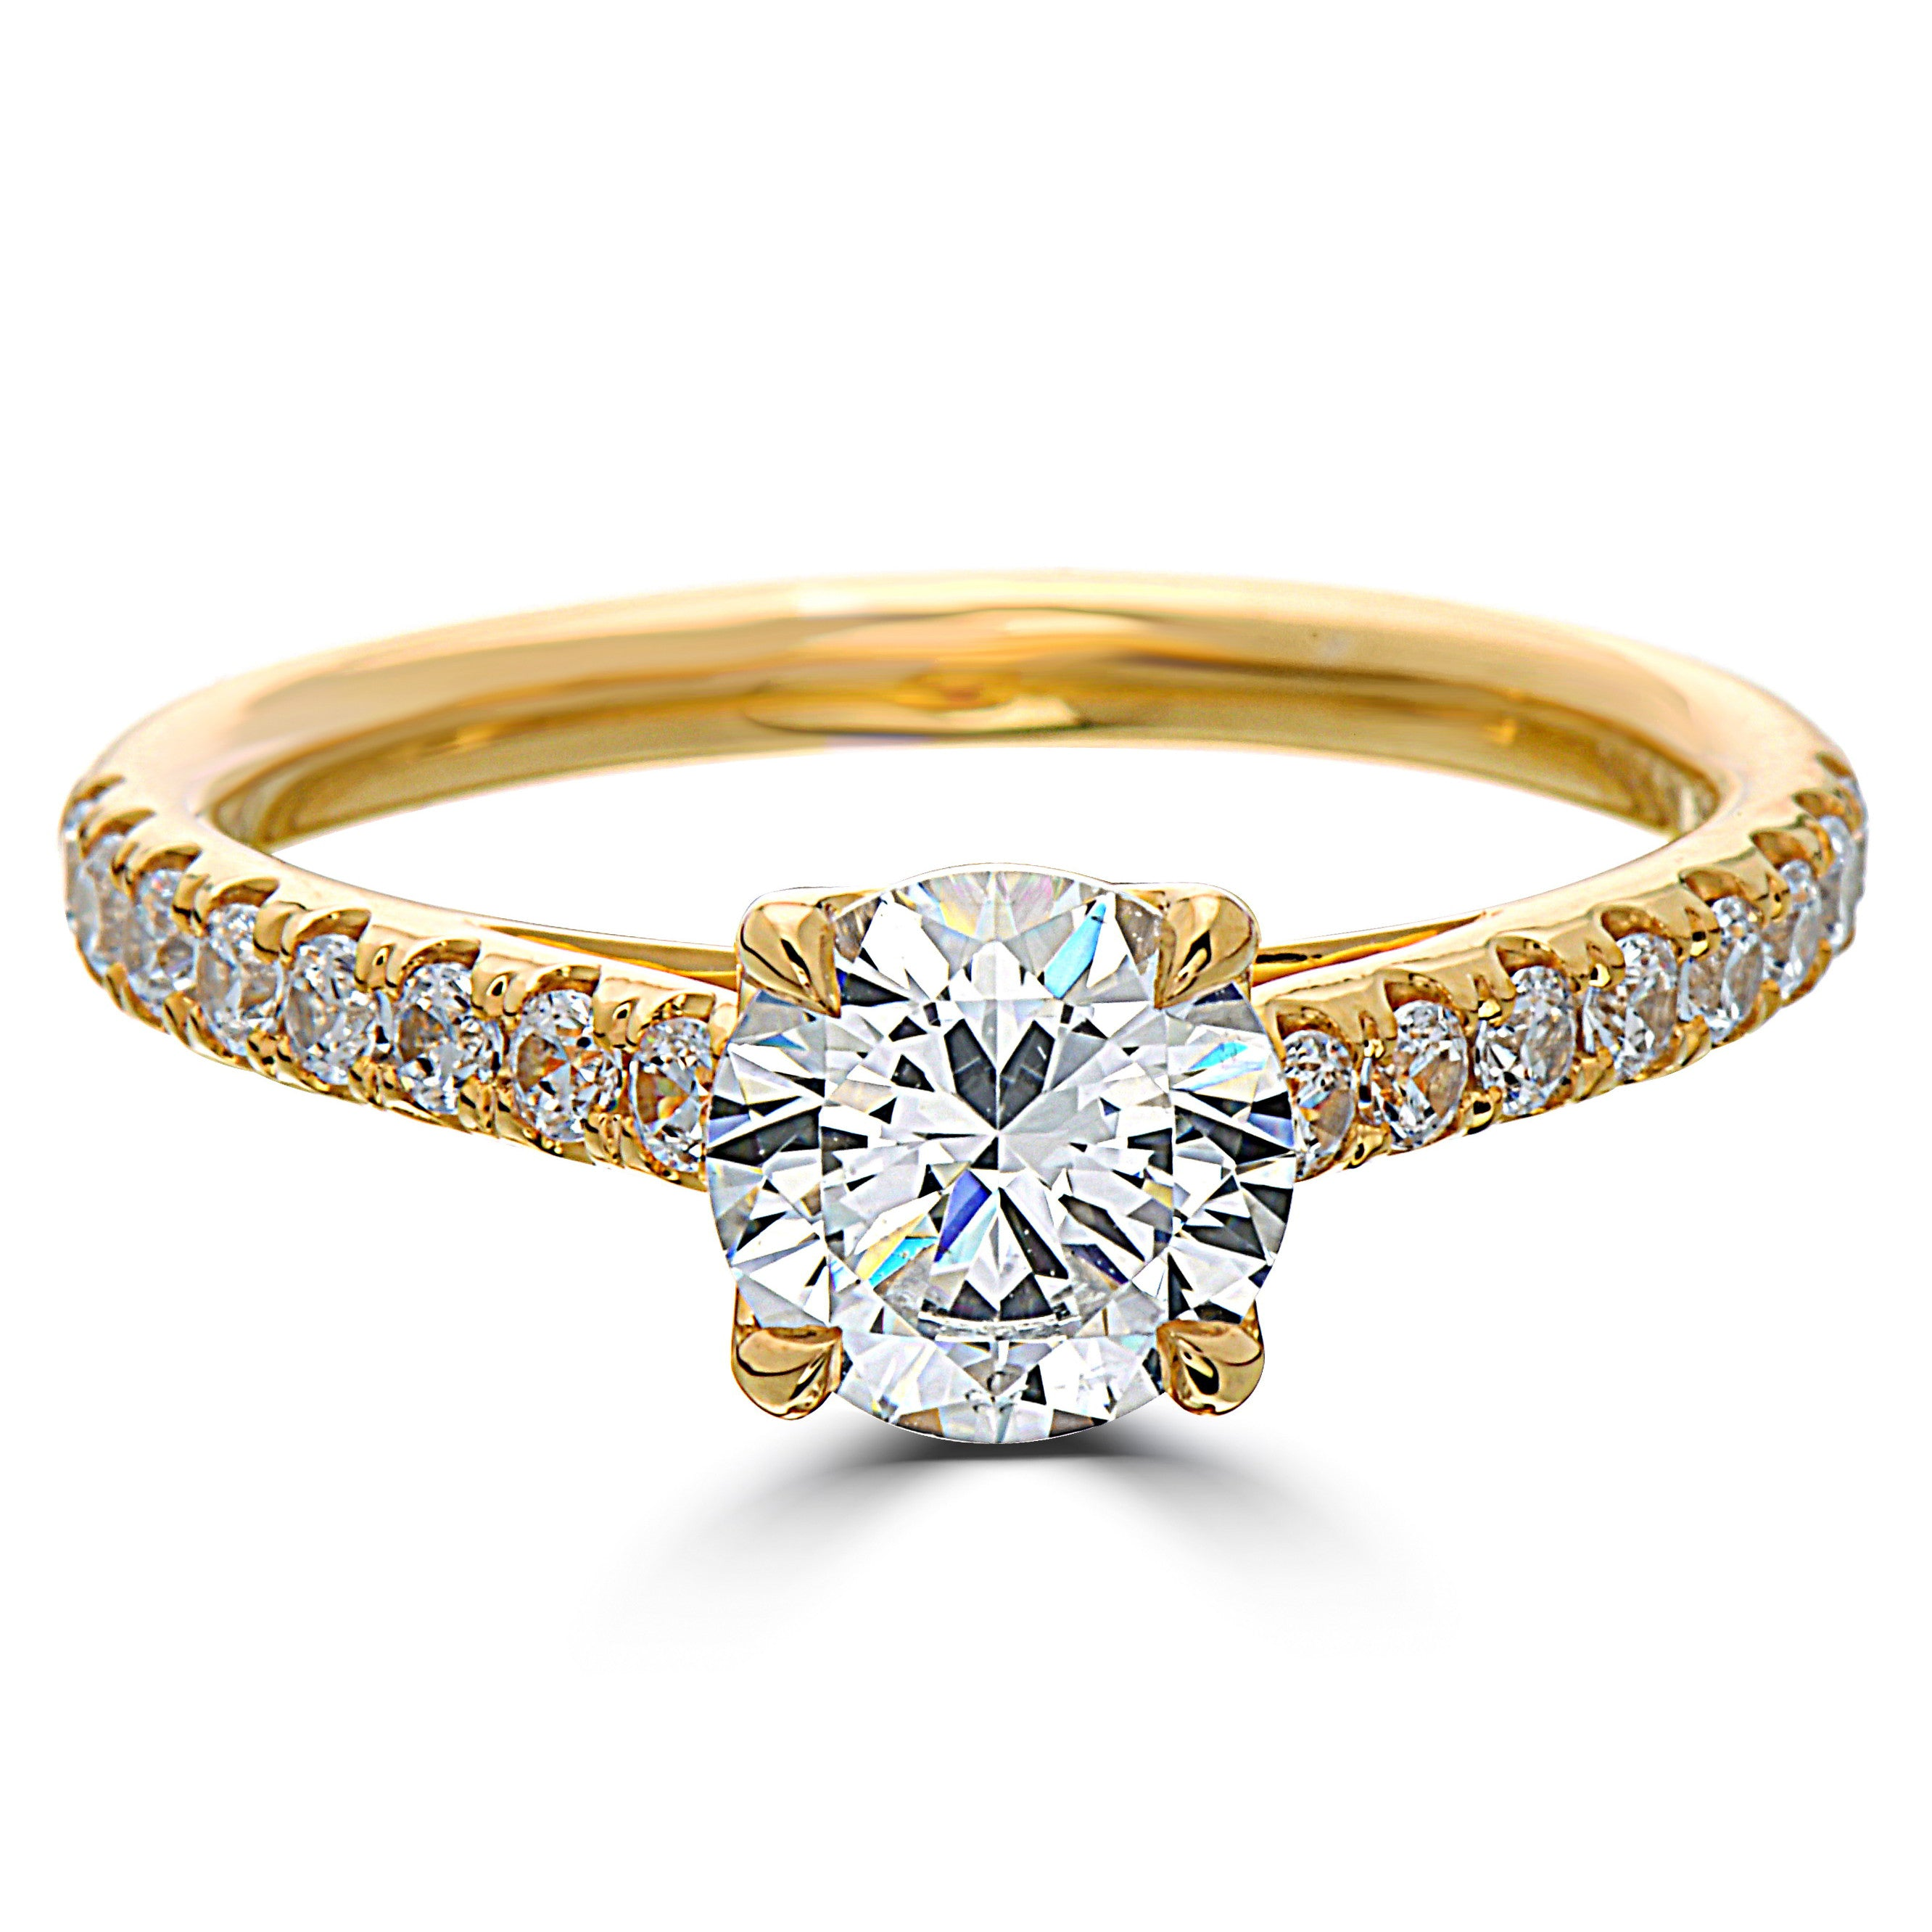 rings wedding luxury cheap inspirational sets her ultimate ring with and guide for diamond carat the awesome tricks money him saving of engagement